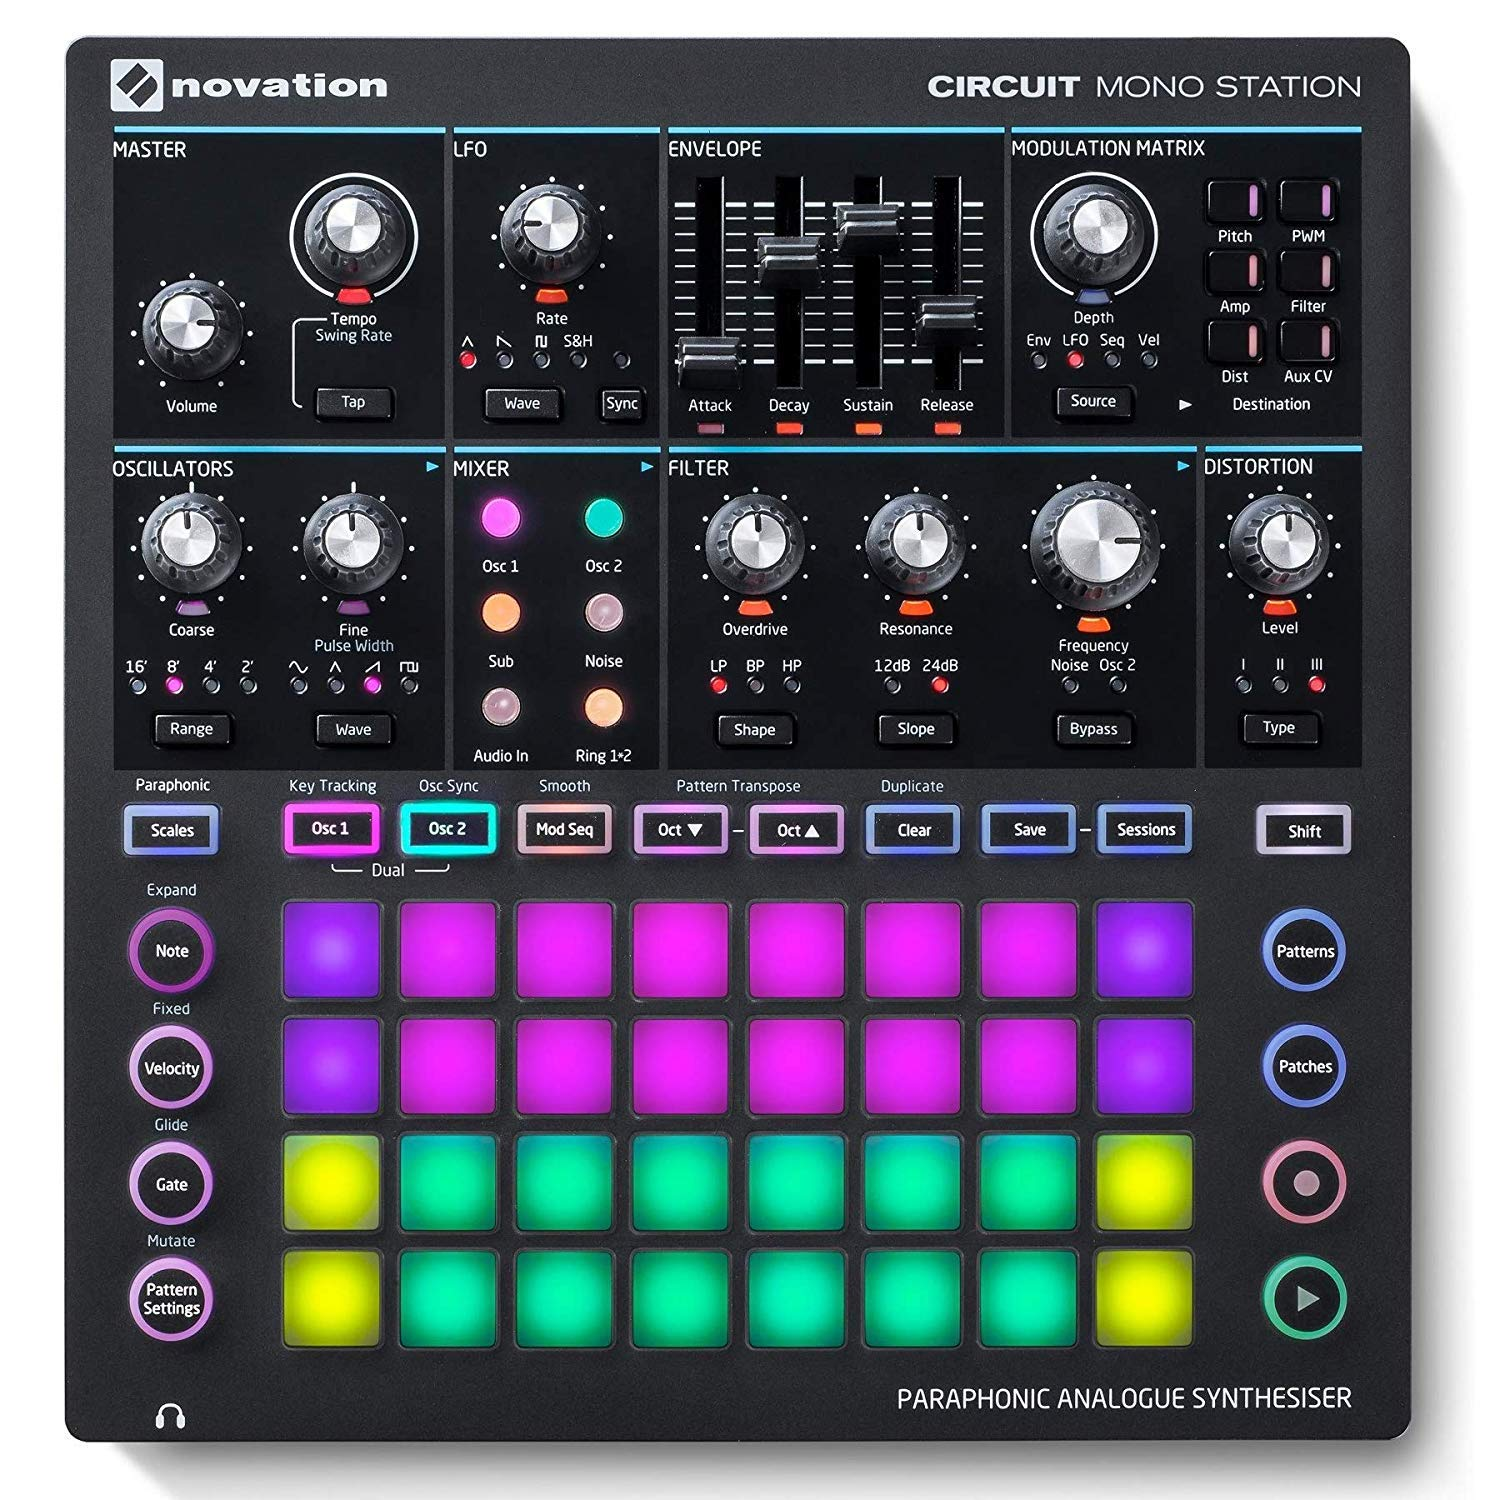 Novation Circuit Mono Station Paraphonic Analog Synthesizer with Microfiber and 1 Year Everything Music Extended Warranty by Novation (Image #3)